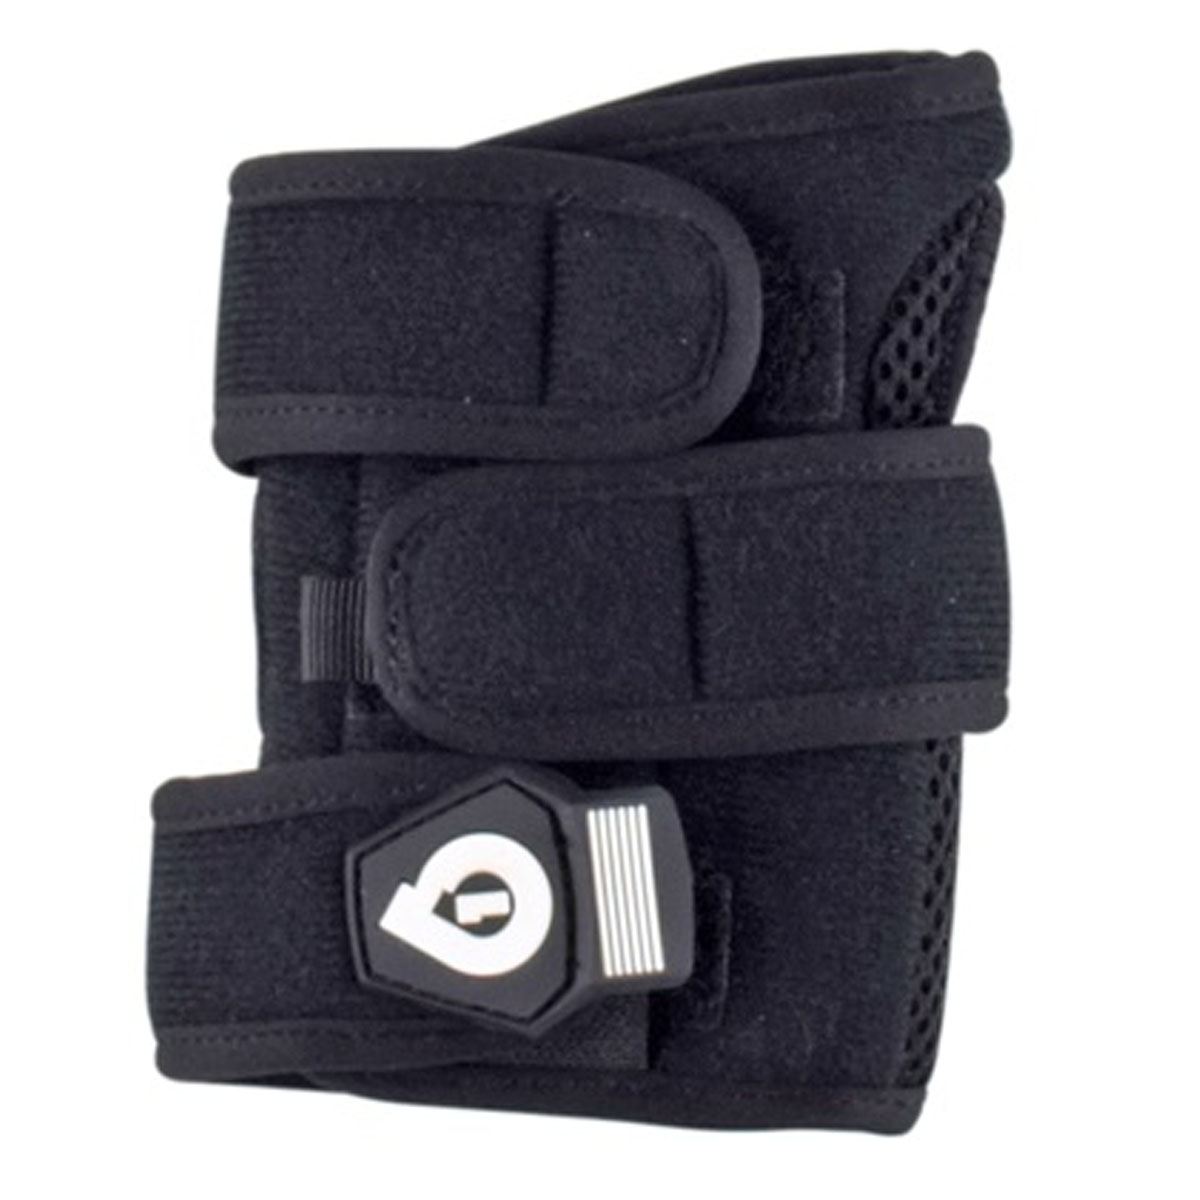 SixSixOne Bike/Moto Wristwrap Wrist Support - Left Hand - 7023